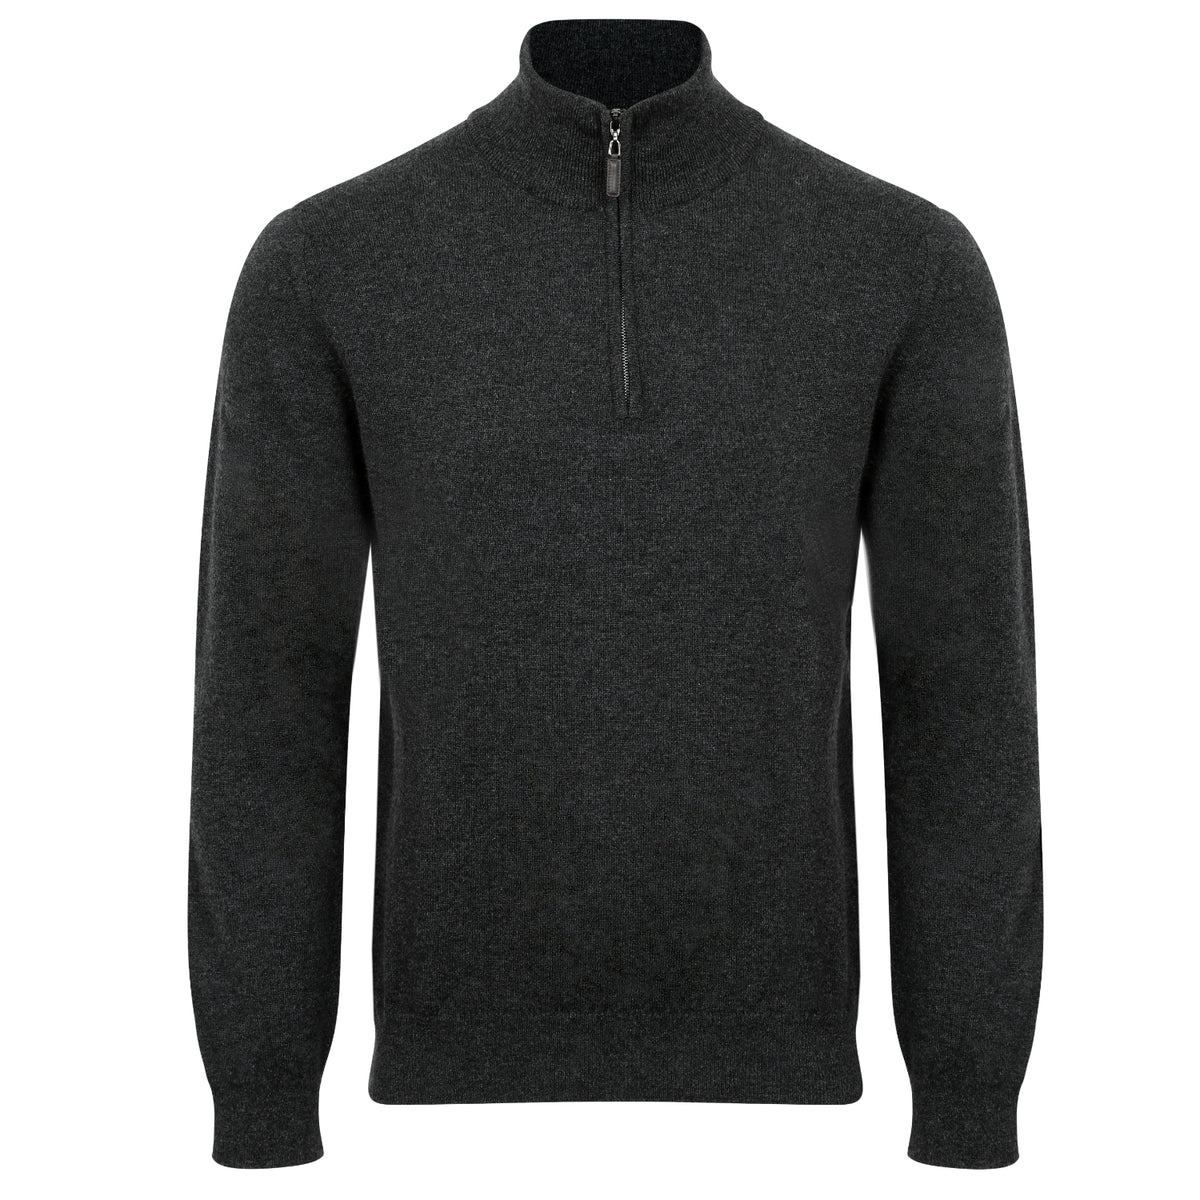 Johnstons of Elgin | Mens 2-Ply Cashmere Zip Turtle Neck | Charcoal Grey | Shop now at The Cashmere Choice | London